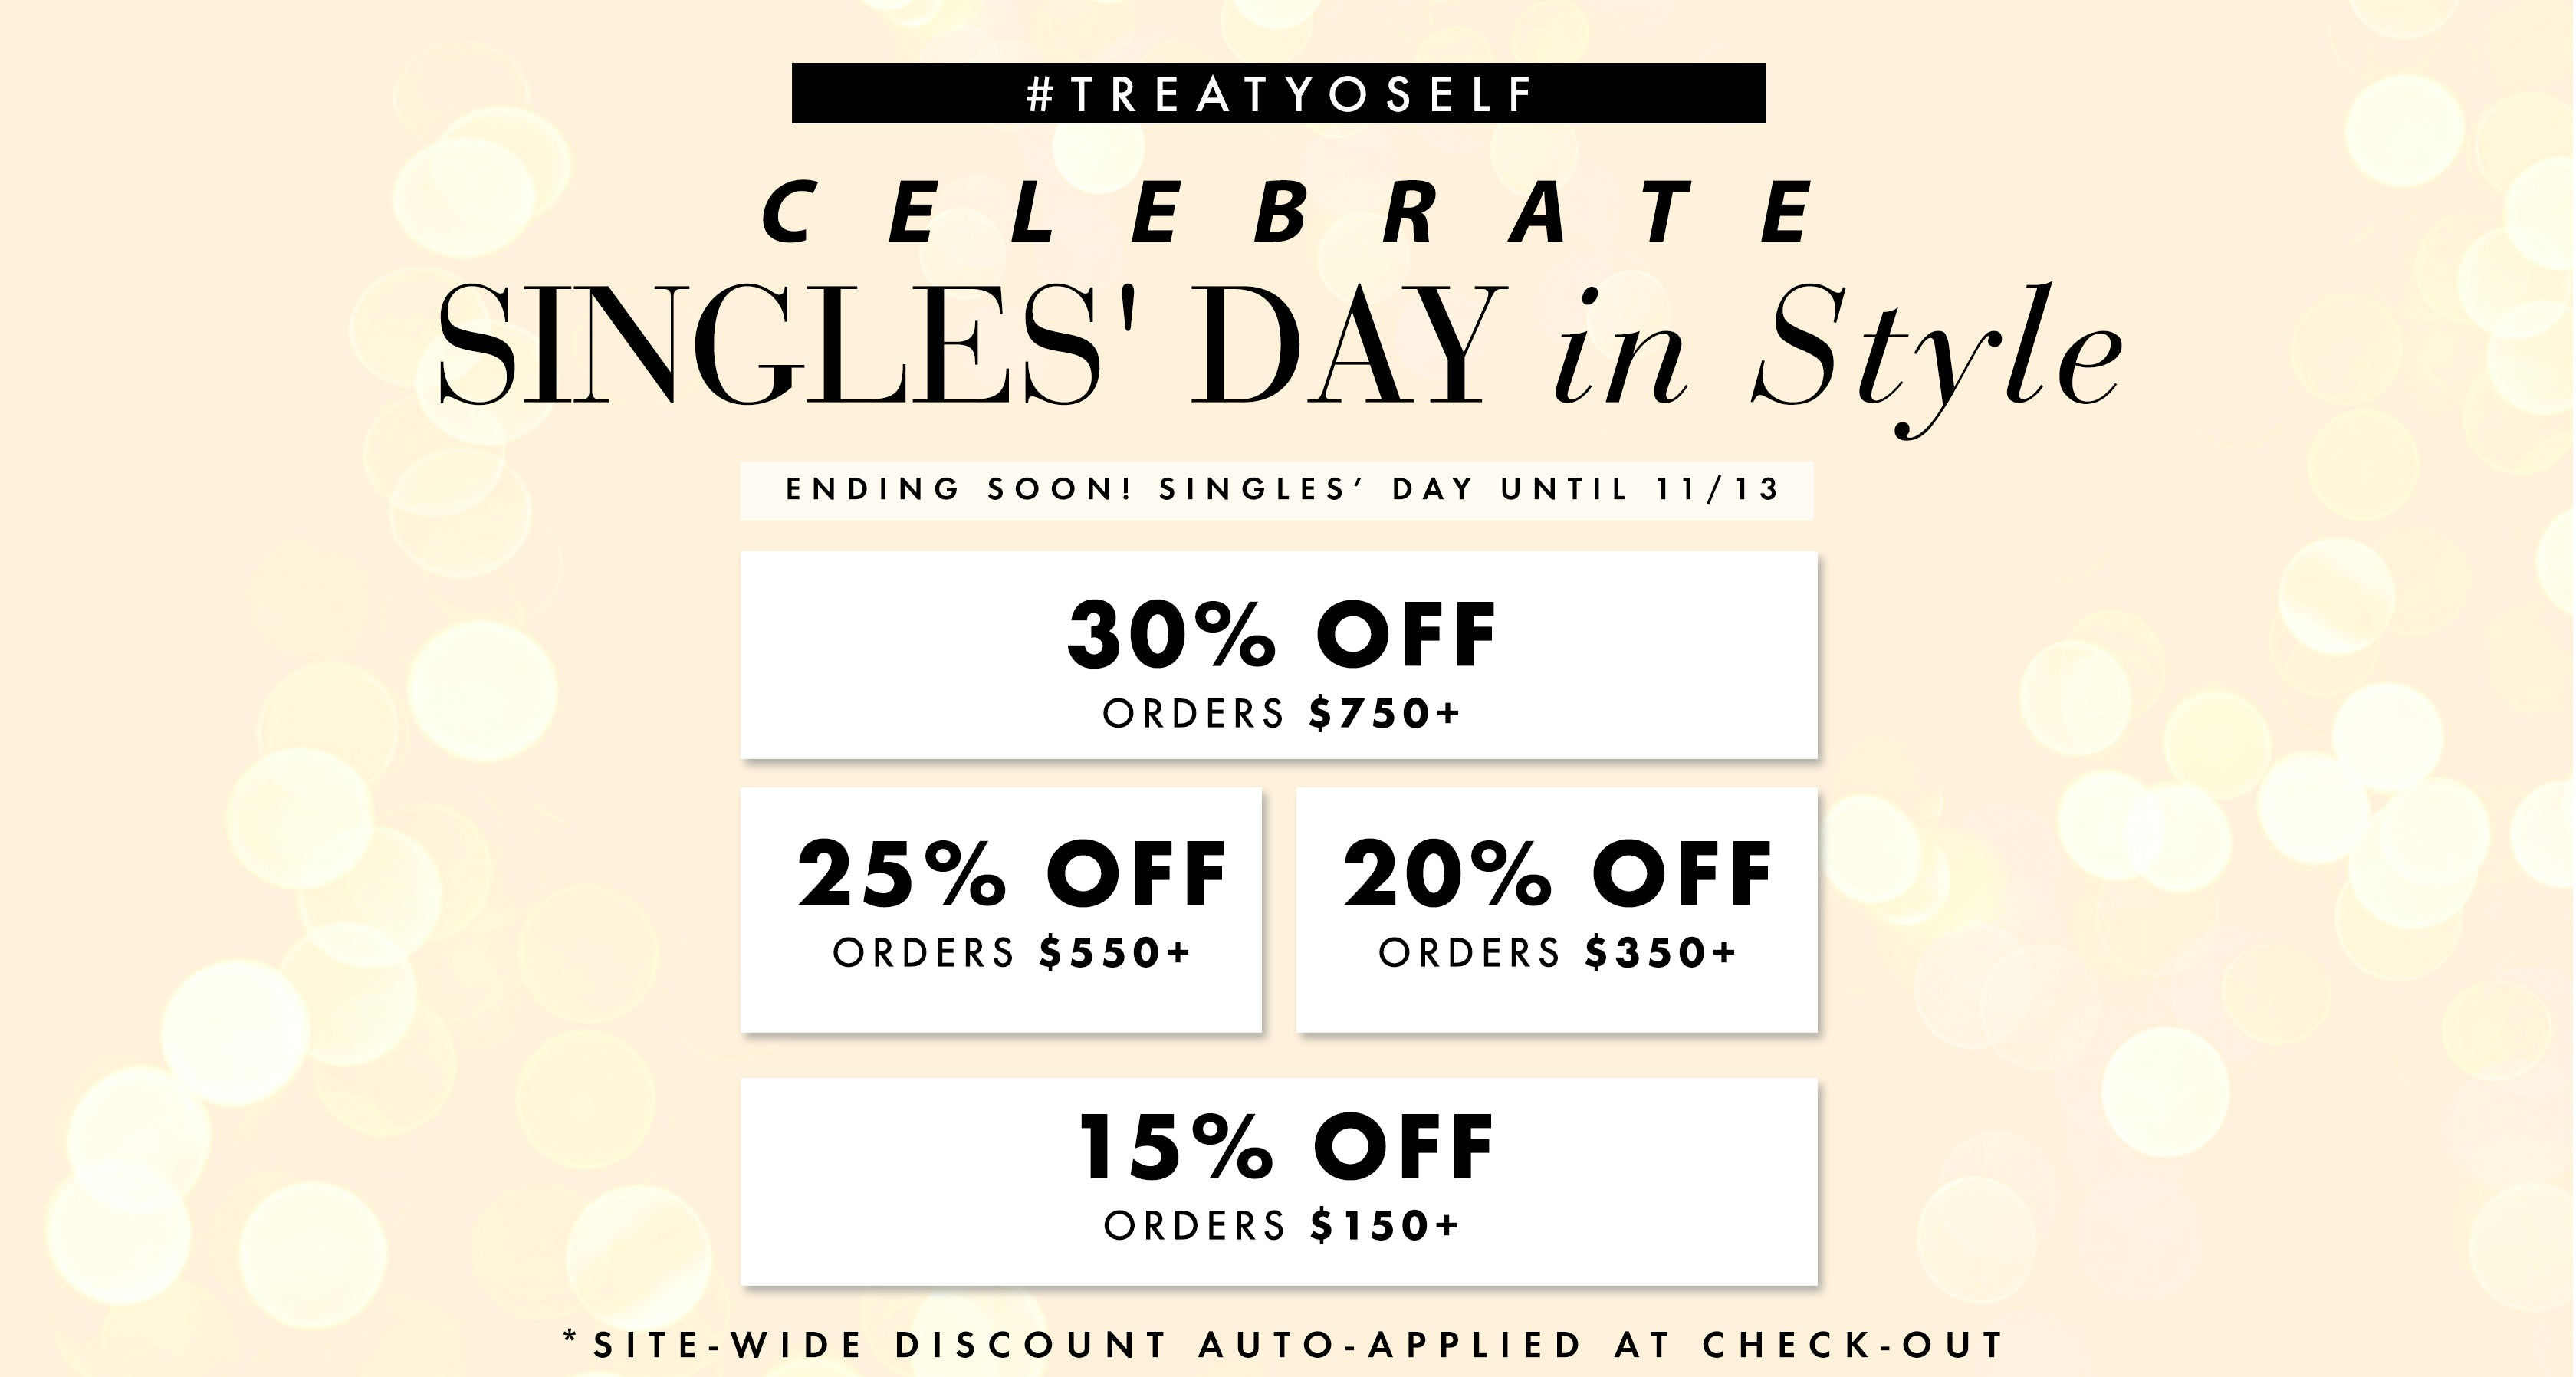 Shop Holiday Styles & Women's Apparel Gifts for Her 11.11 Singles' Day Sale | J.ING